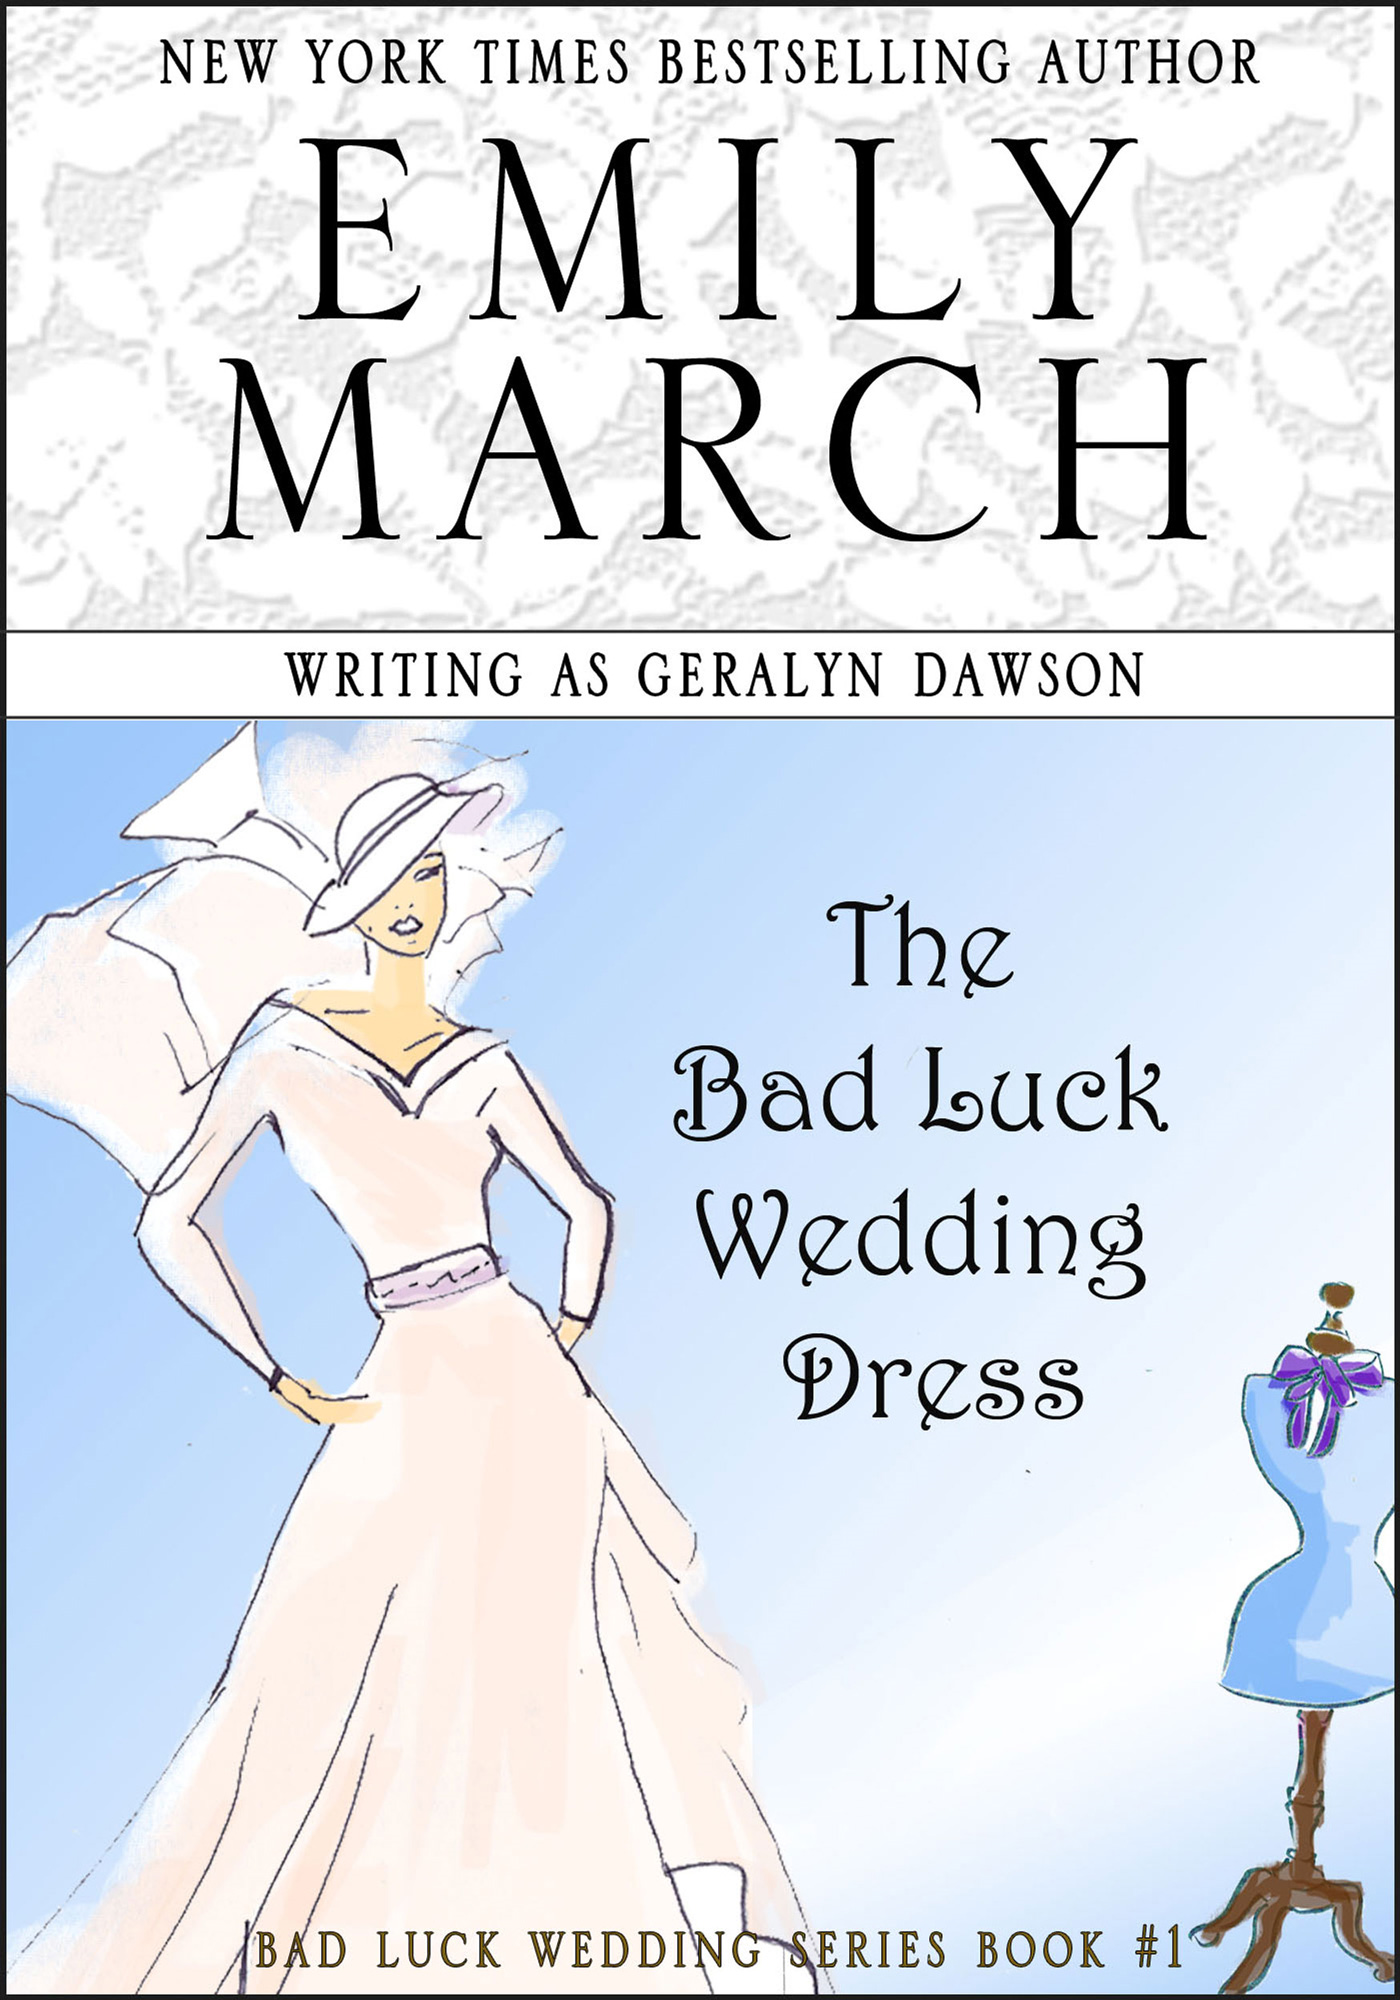 The Bad Luck Wedding Dress